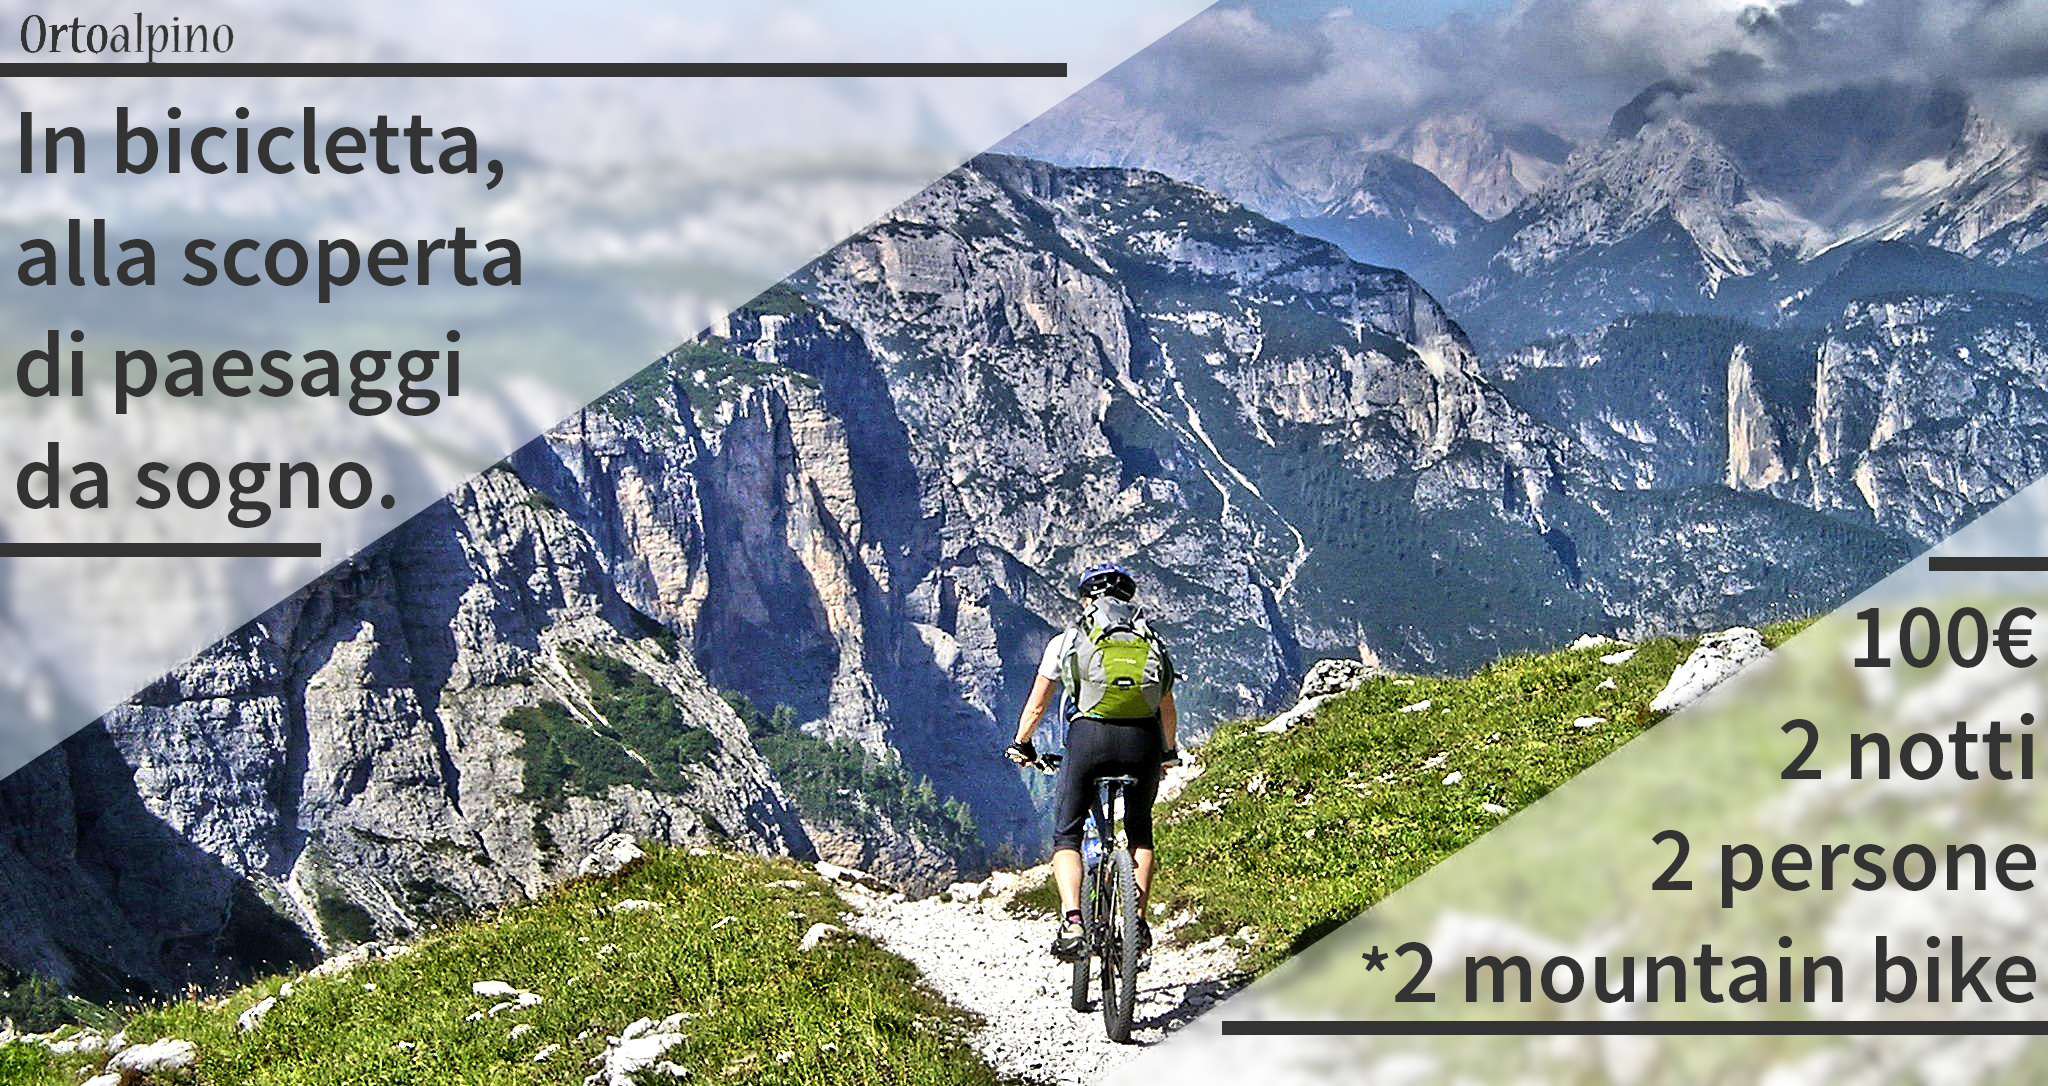 prealpi in mountain bike offerta weekend luglio estate b&b belluno dolomiti orto alpino